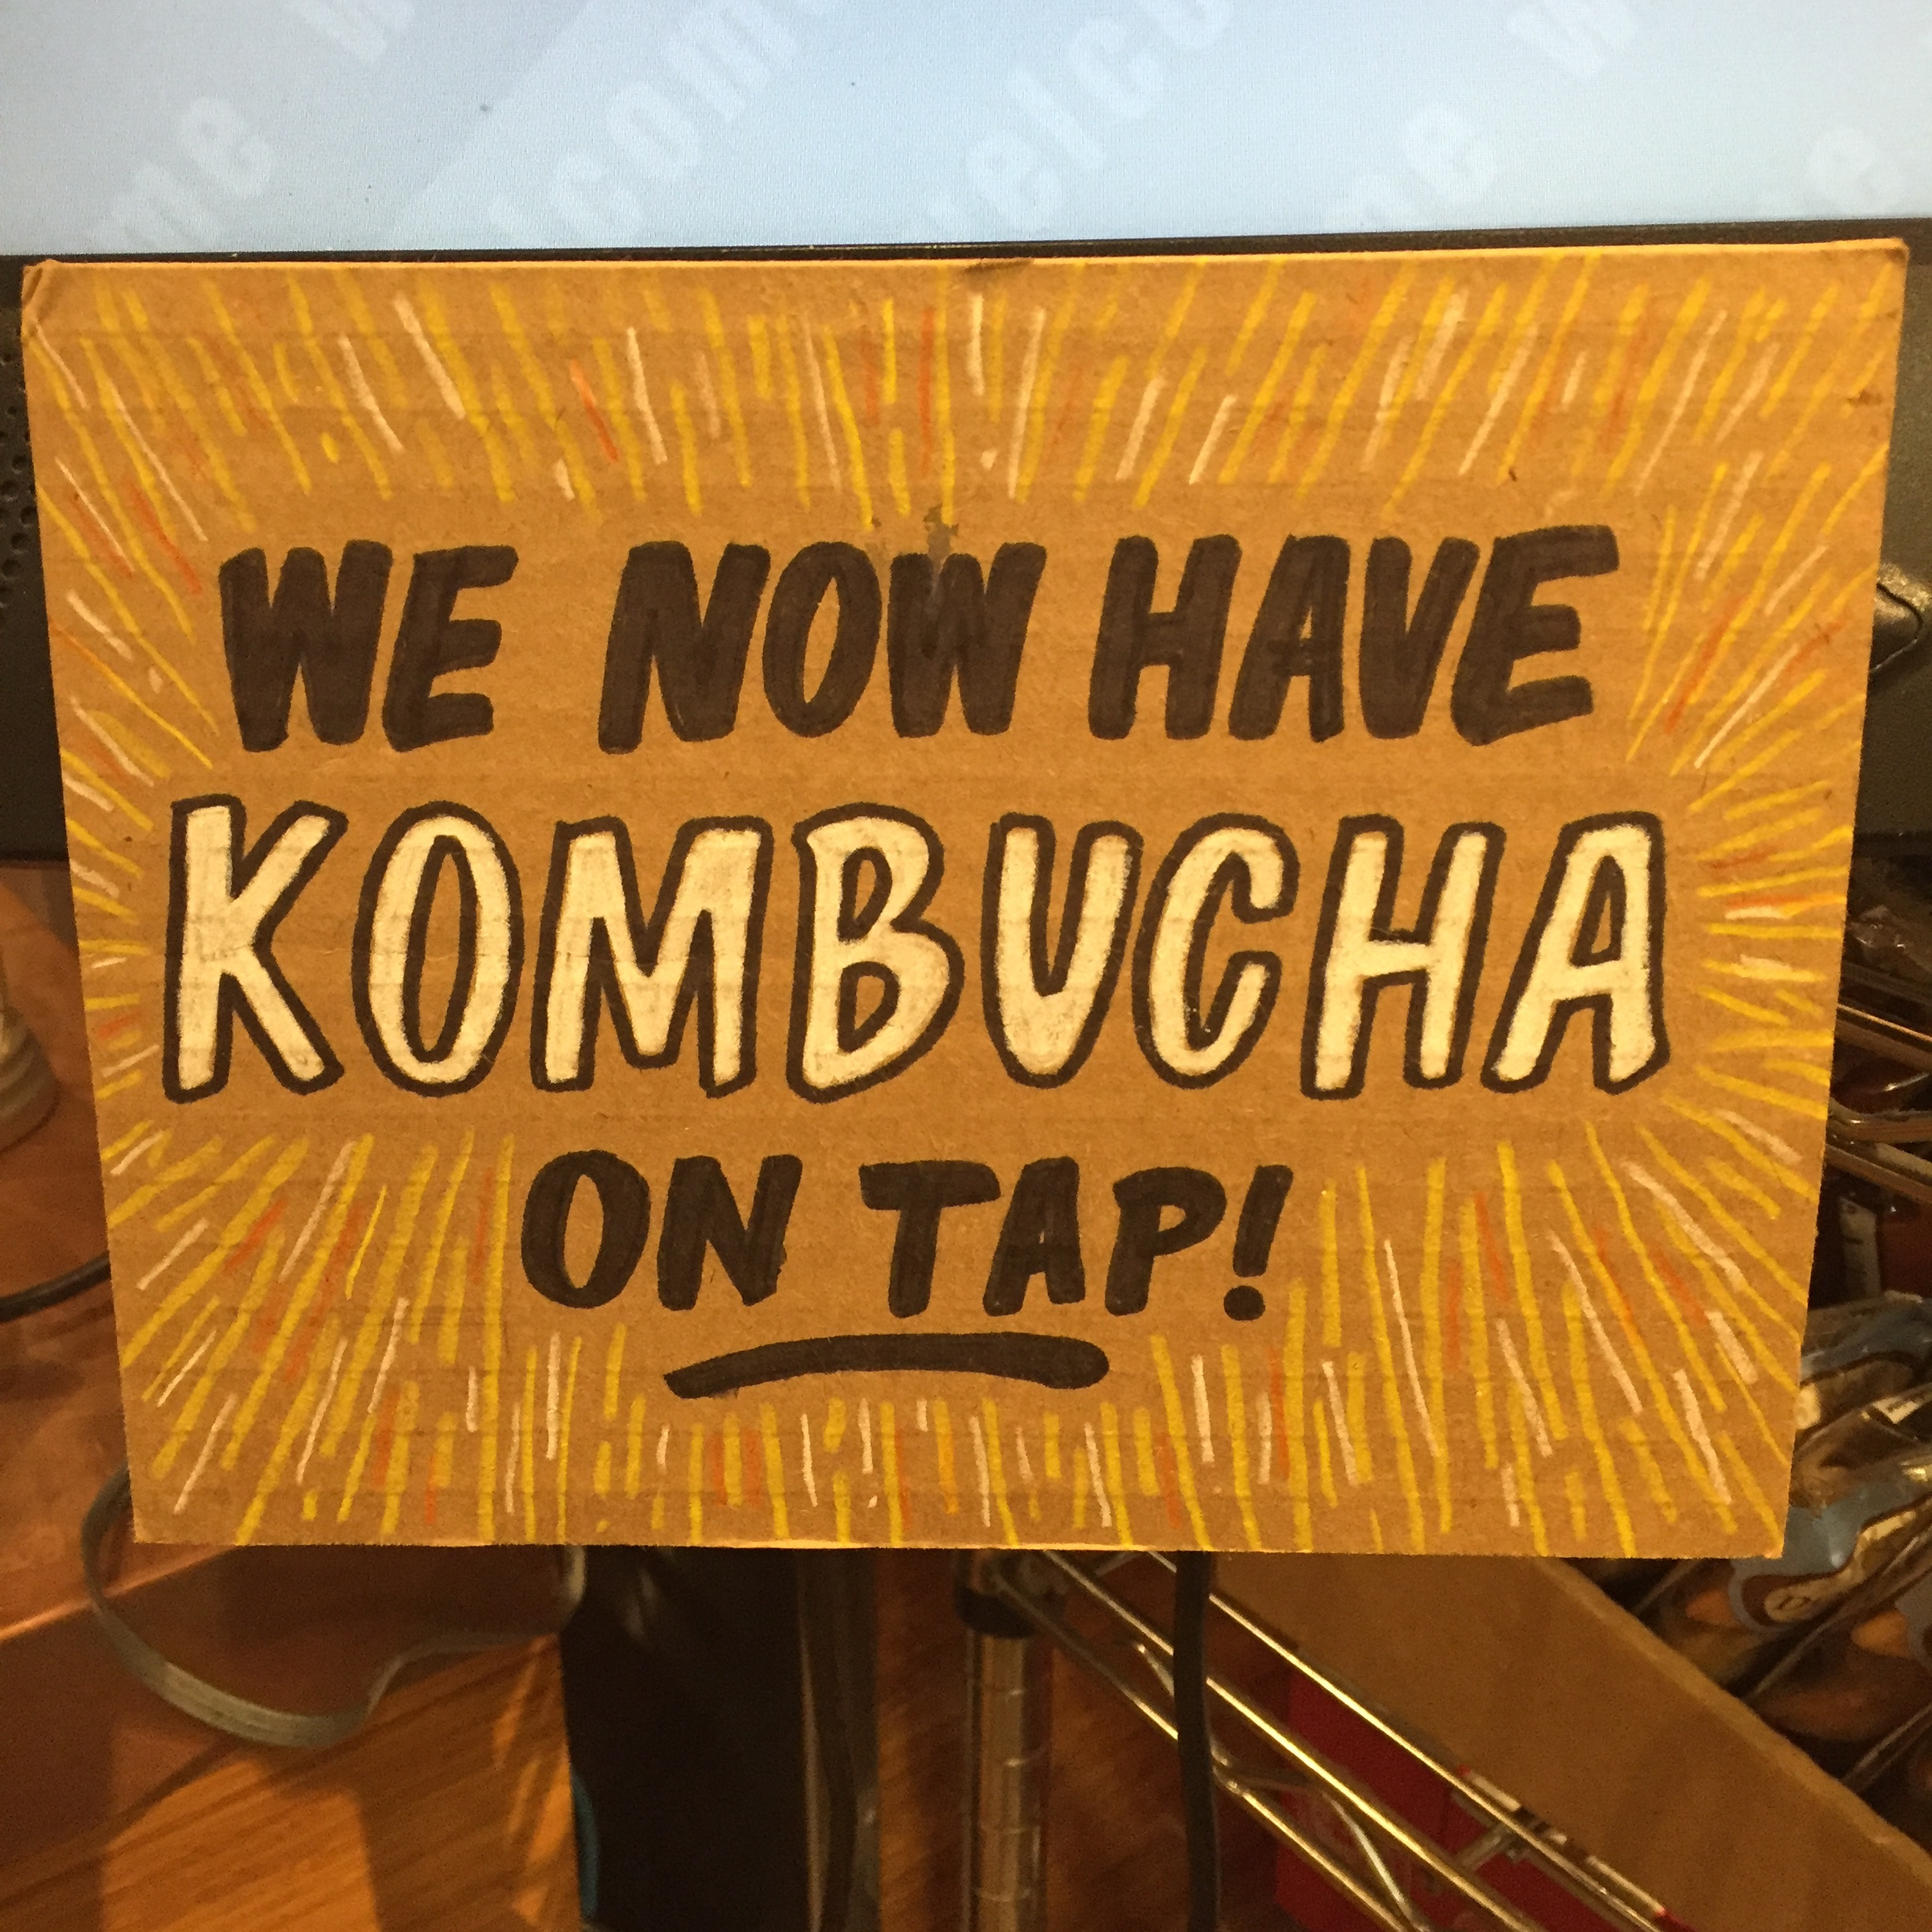 Kombucha on Tap at Canyon Market.